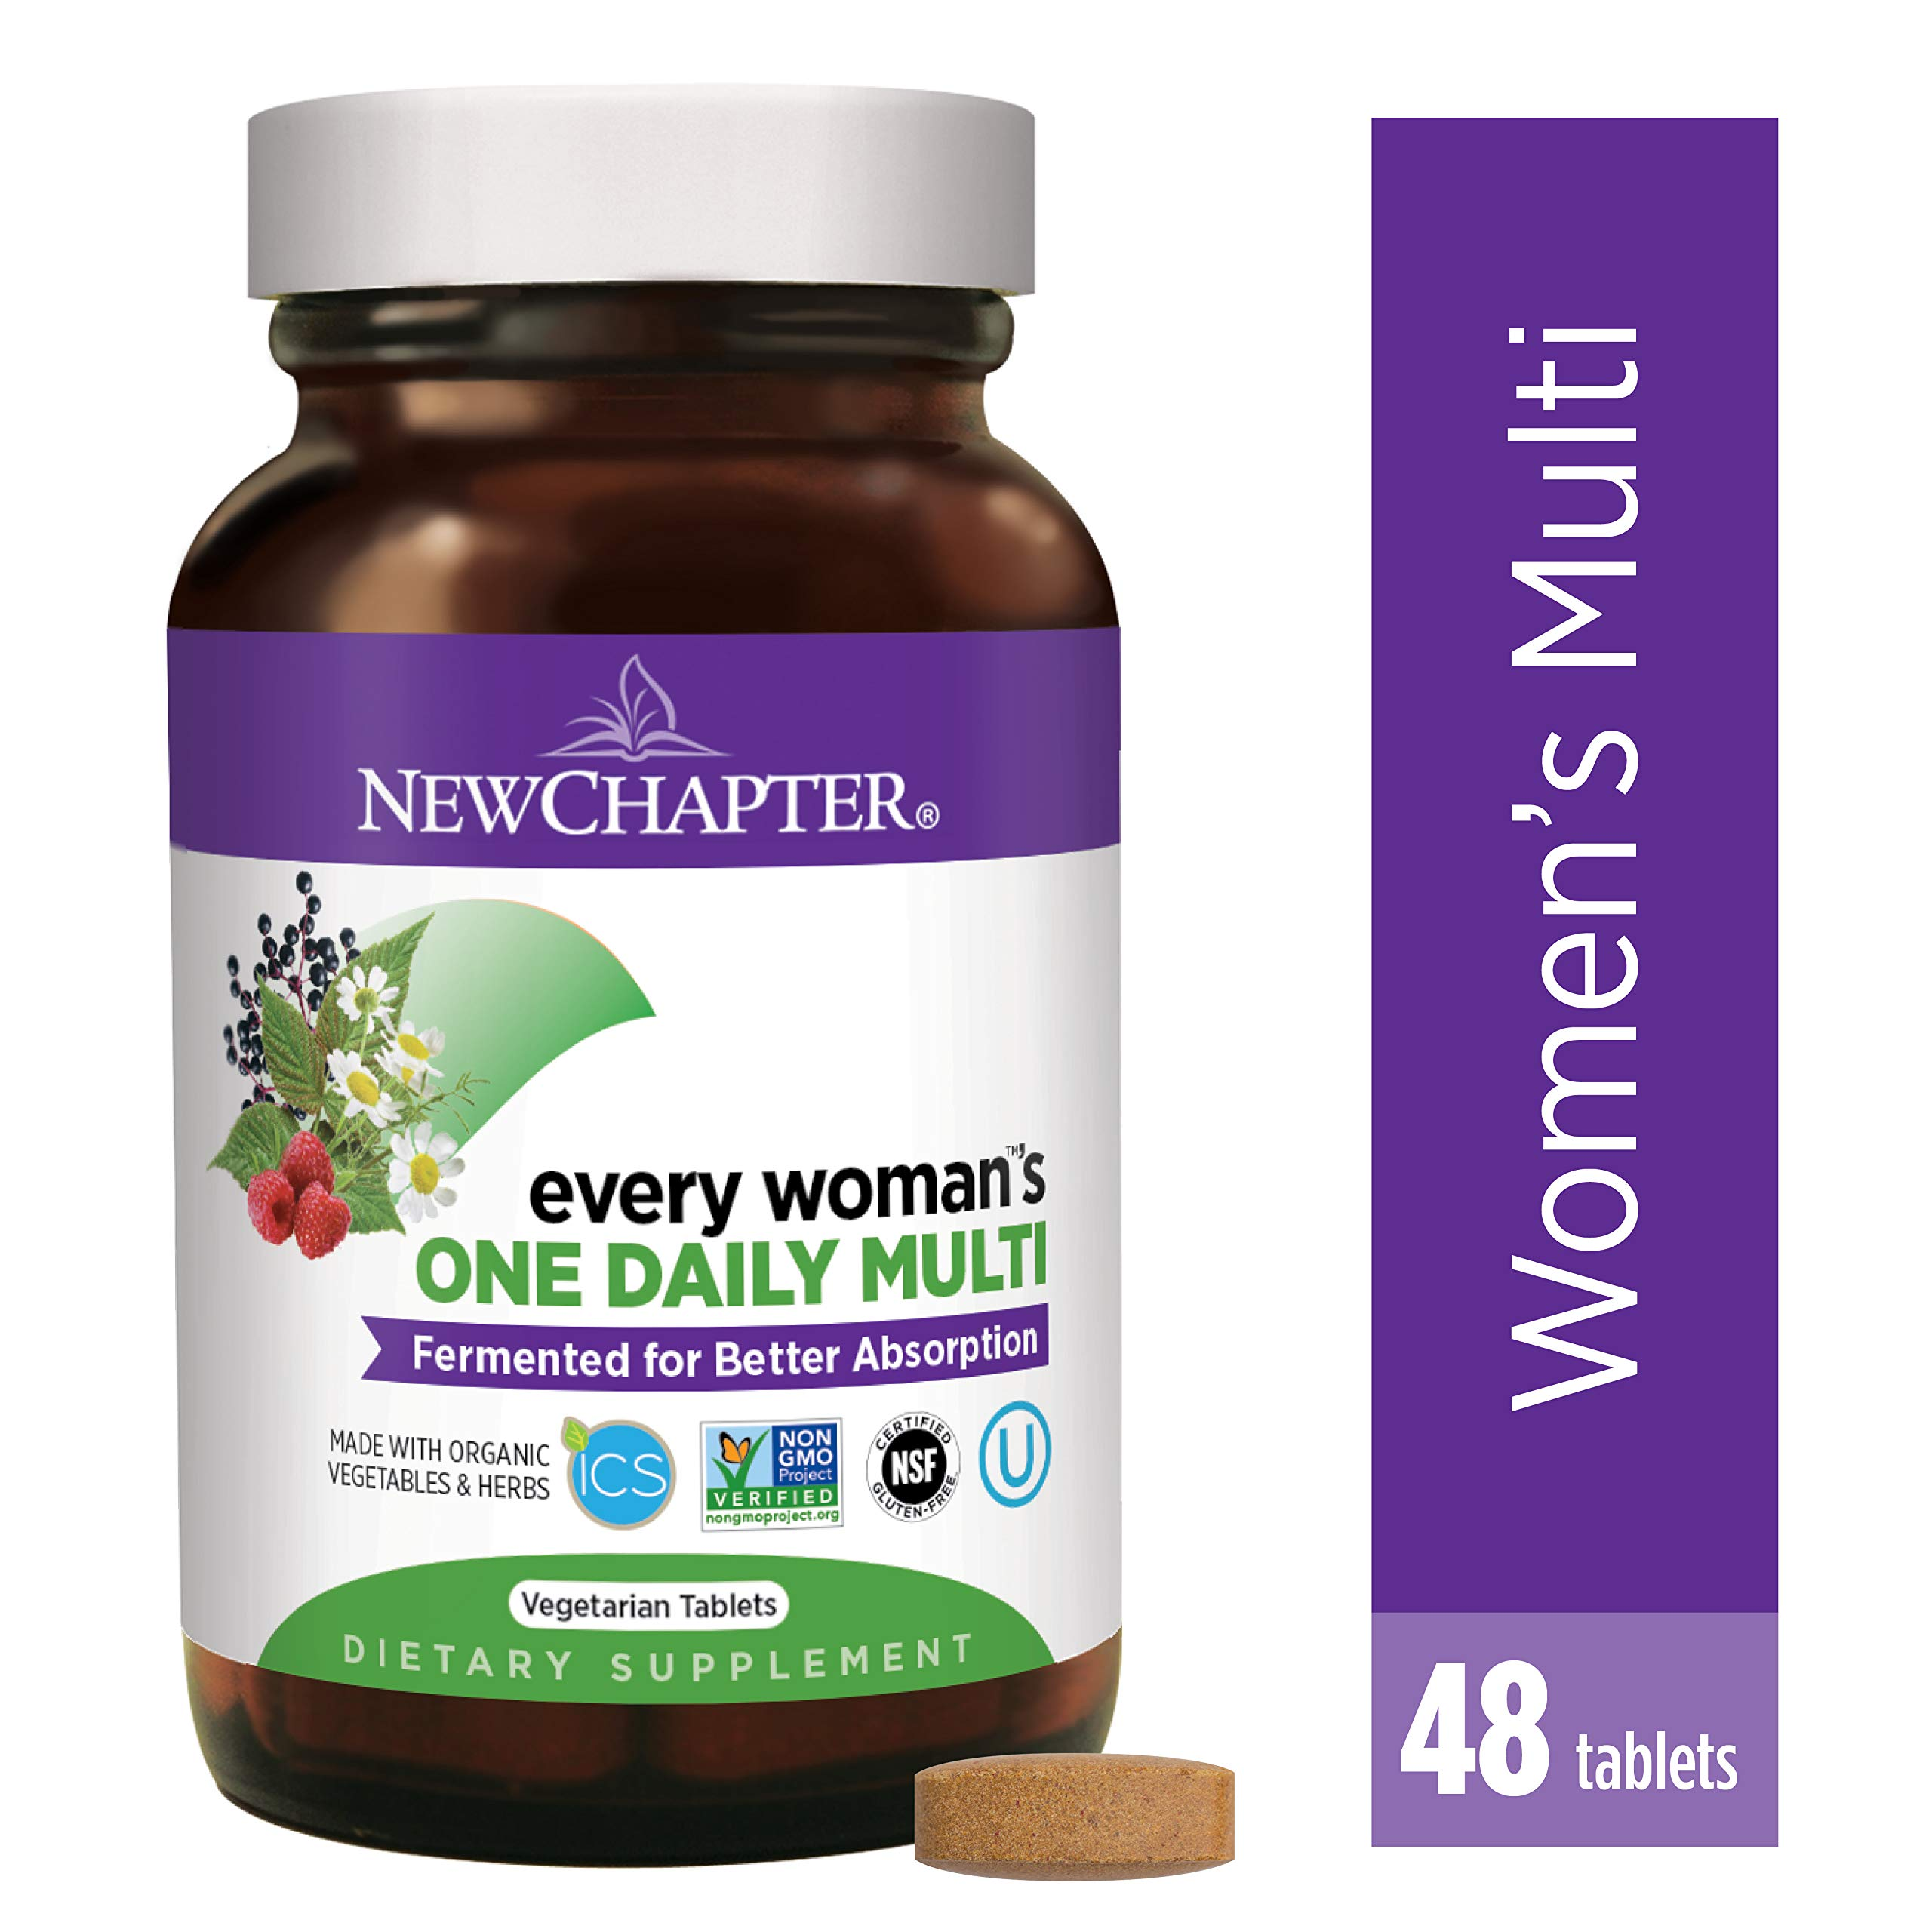 New Chapter Women's Multivitamin, Every Woman's One Daily, Fermented with Probiotics + Iron + B Vitamins + Vitamin D3 + Organic Non-GMO Ingredients - 48 ct (Packaging May Vary) by New Chapter